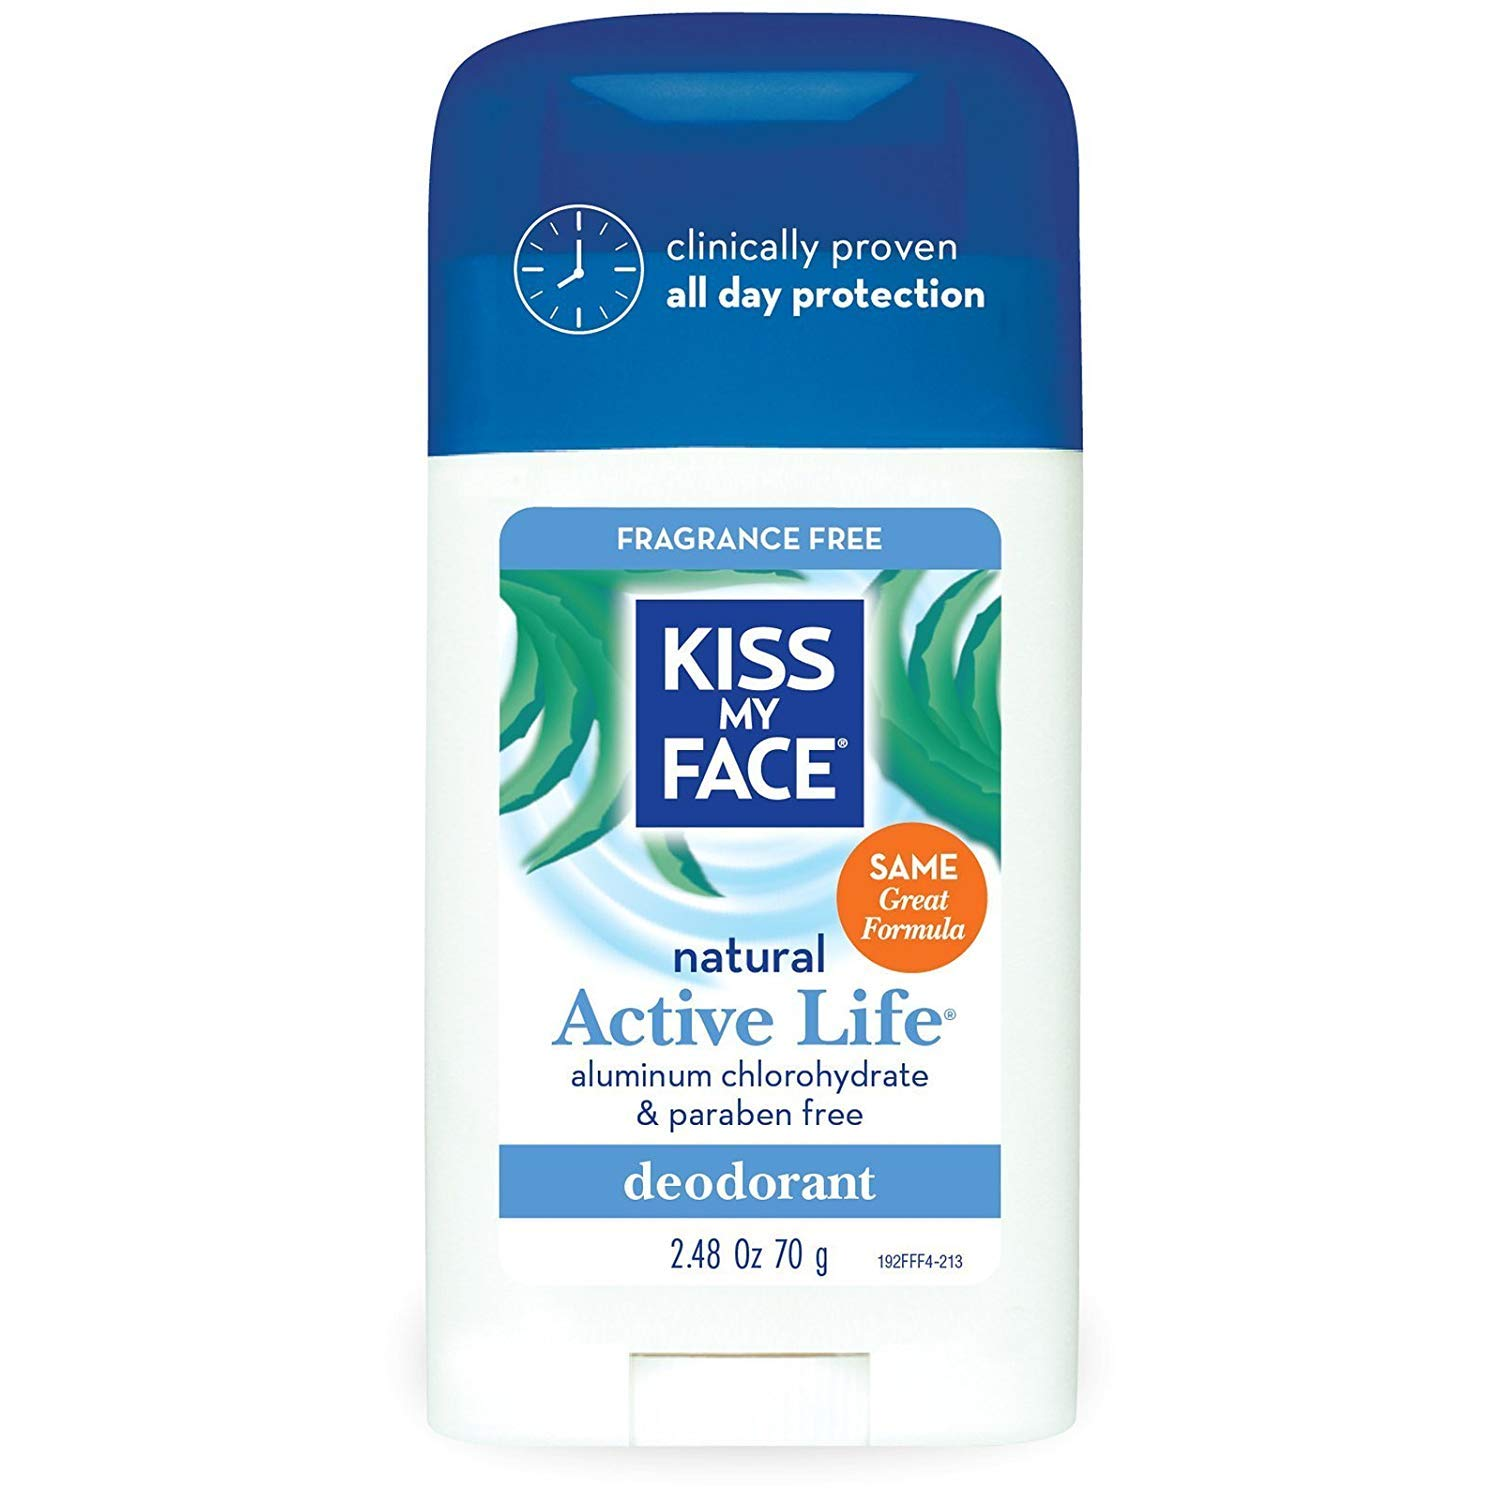 Kiss My Face Deodorant Stick Active Life Fragrance Free 2.48 Ounce (73ml) (2 Pack)